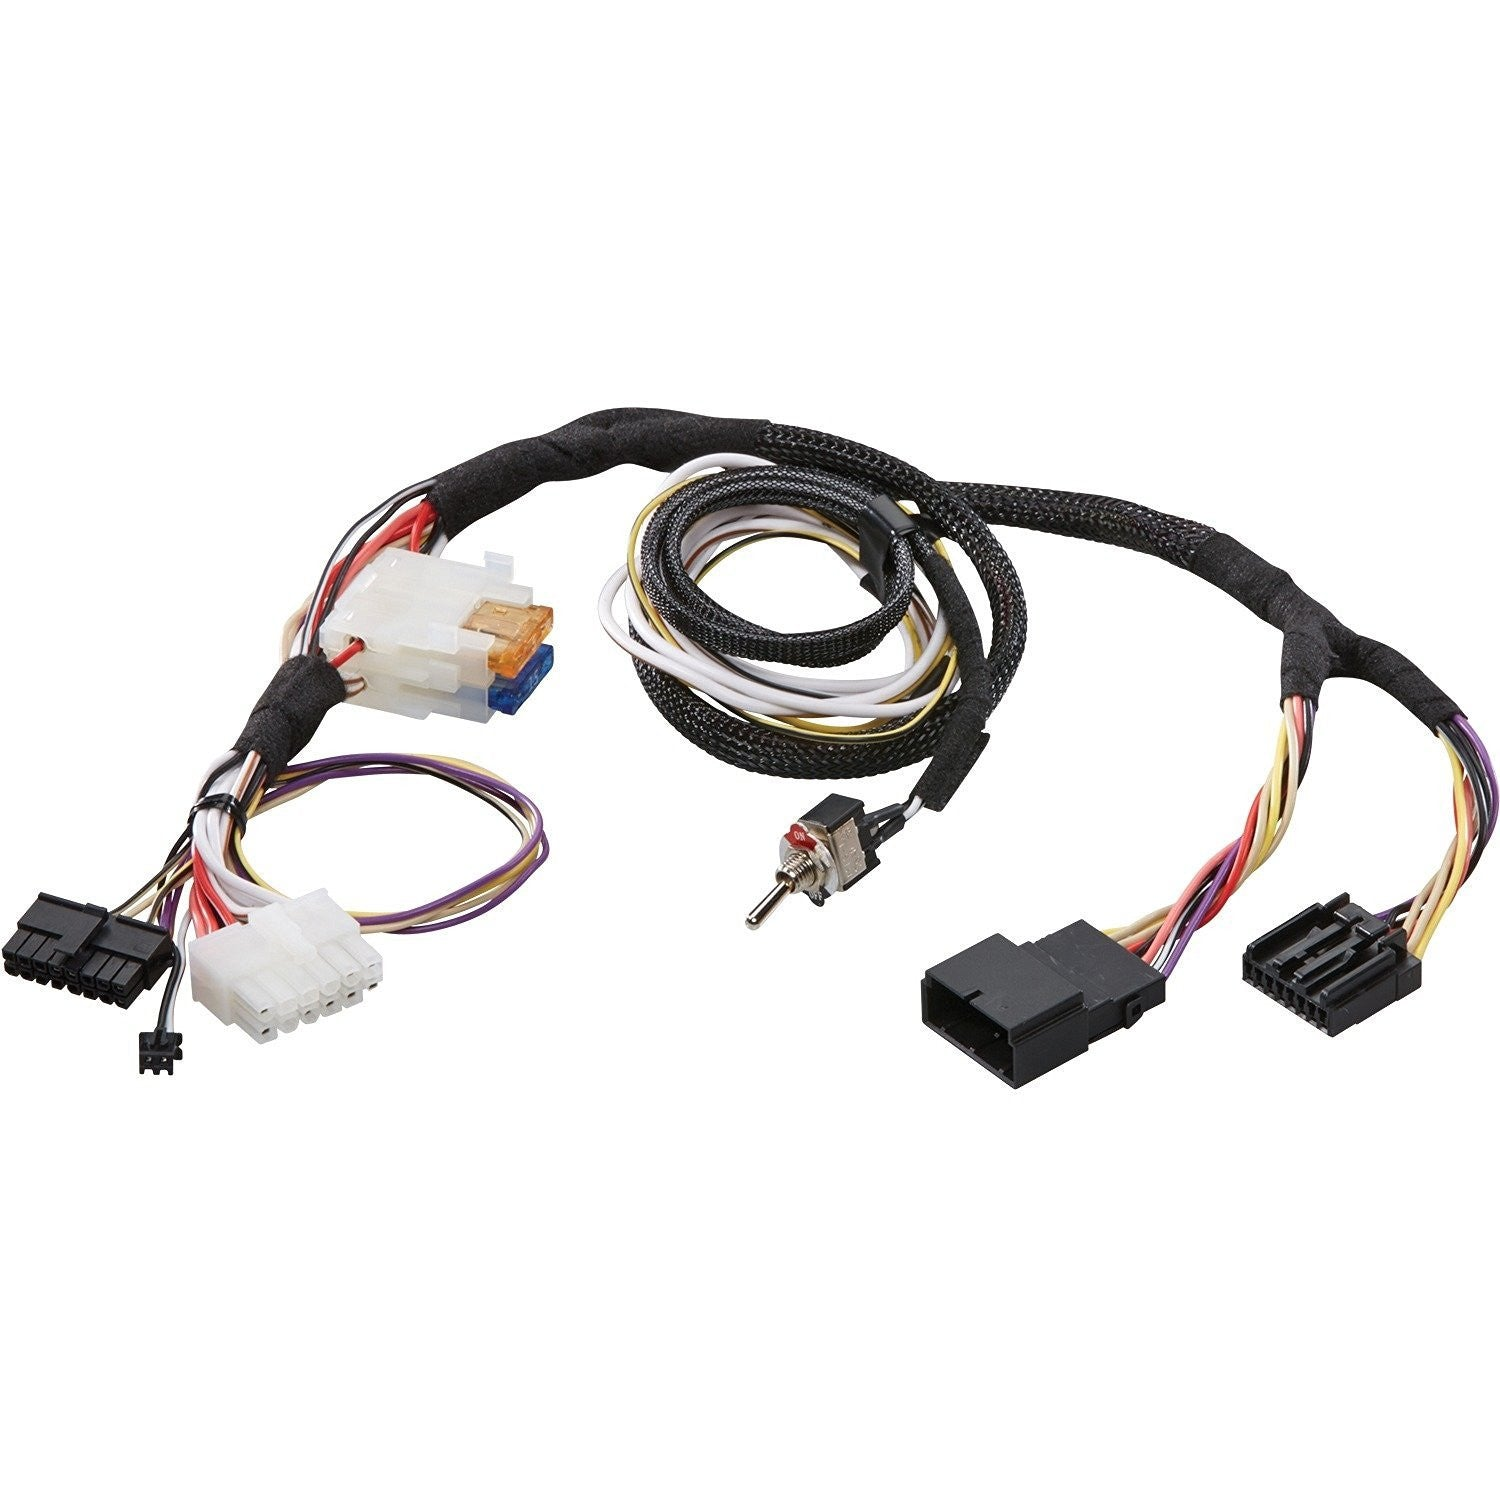 Directed THCH1 T-Harness for Chrysler | Directed Digital System T-Harness - Lockdown Security